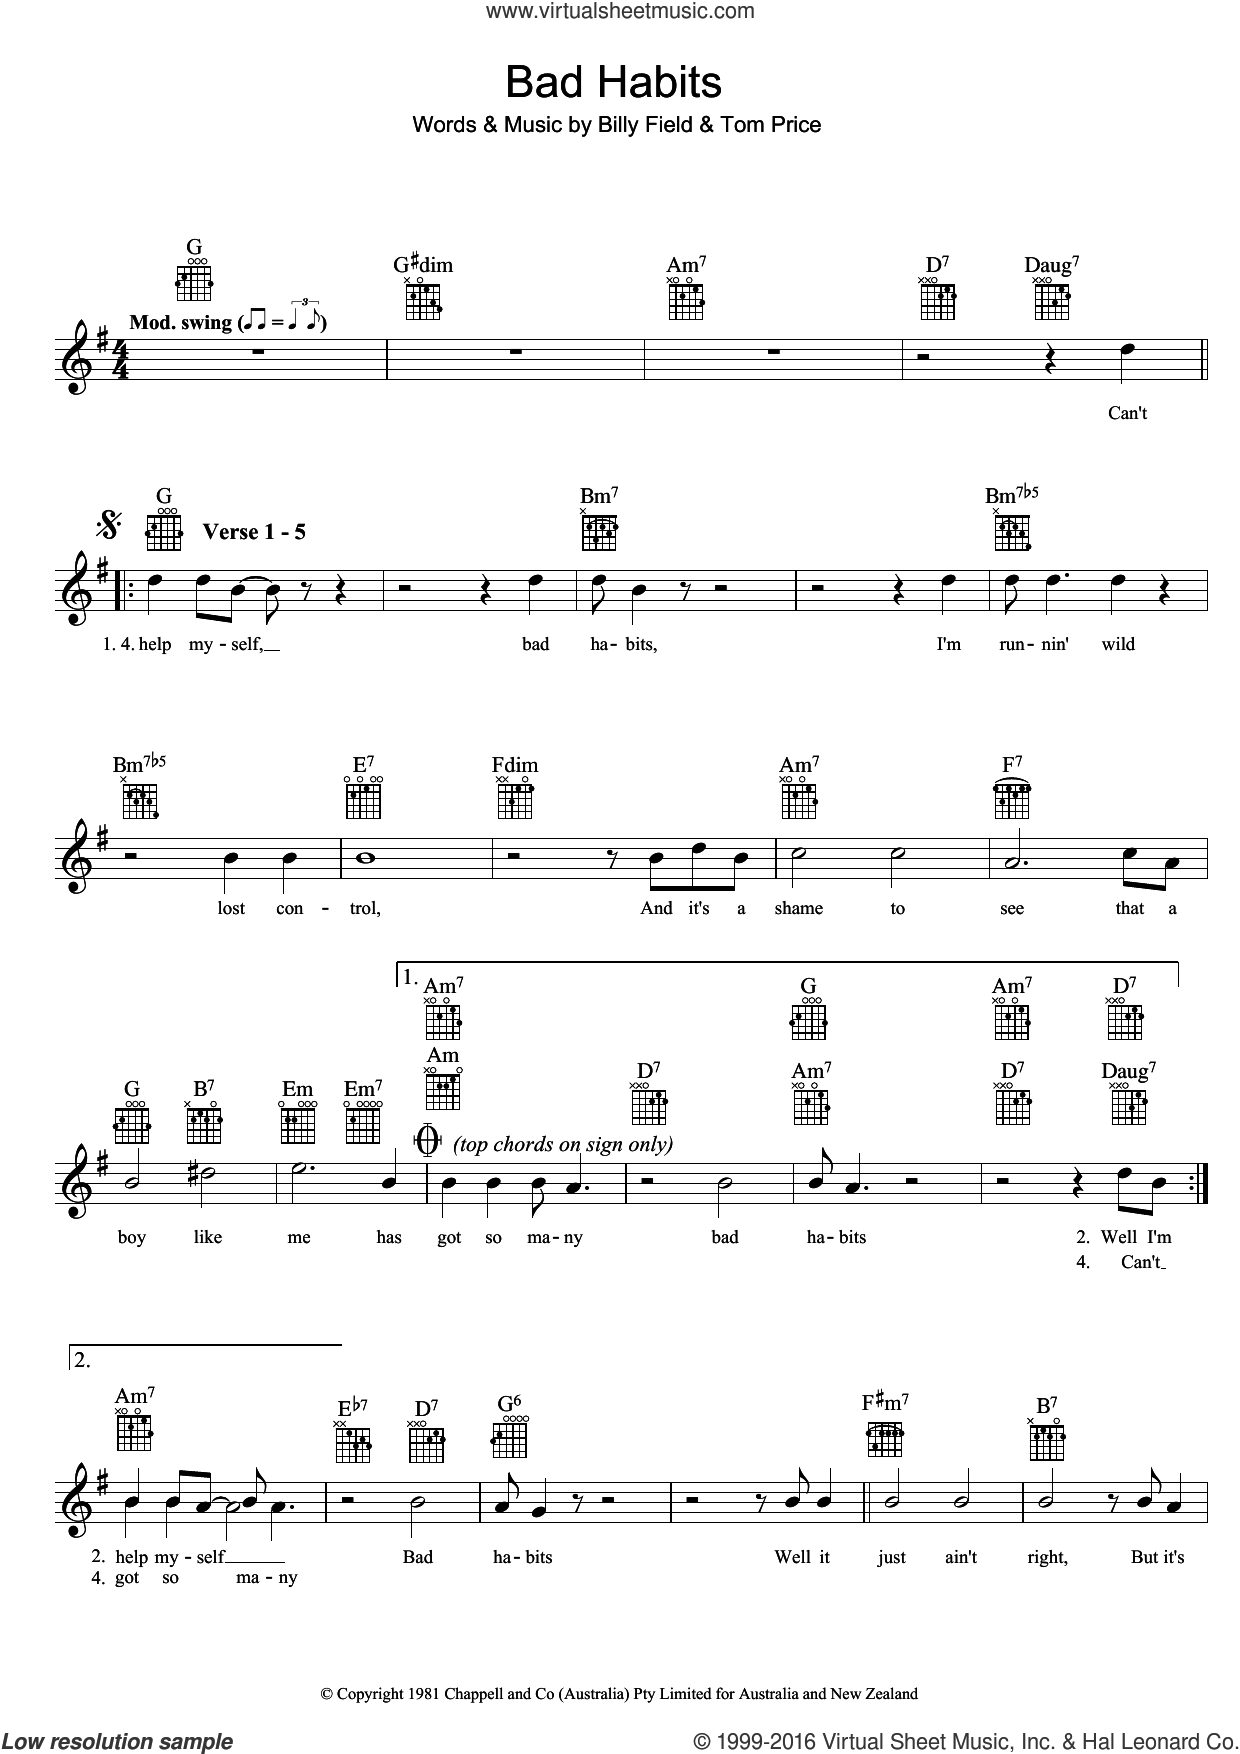 Bad Habits sheet music for voice and other instruments (fake book) by Tom Price. Score Image Preview.